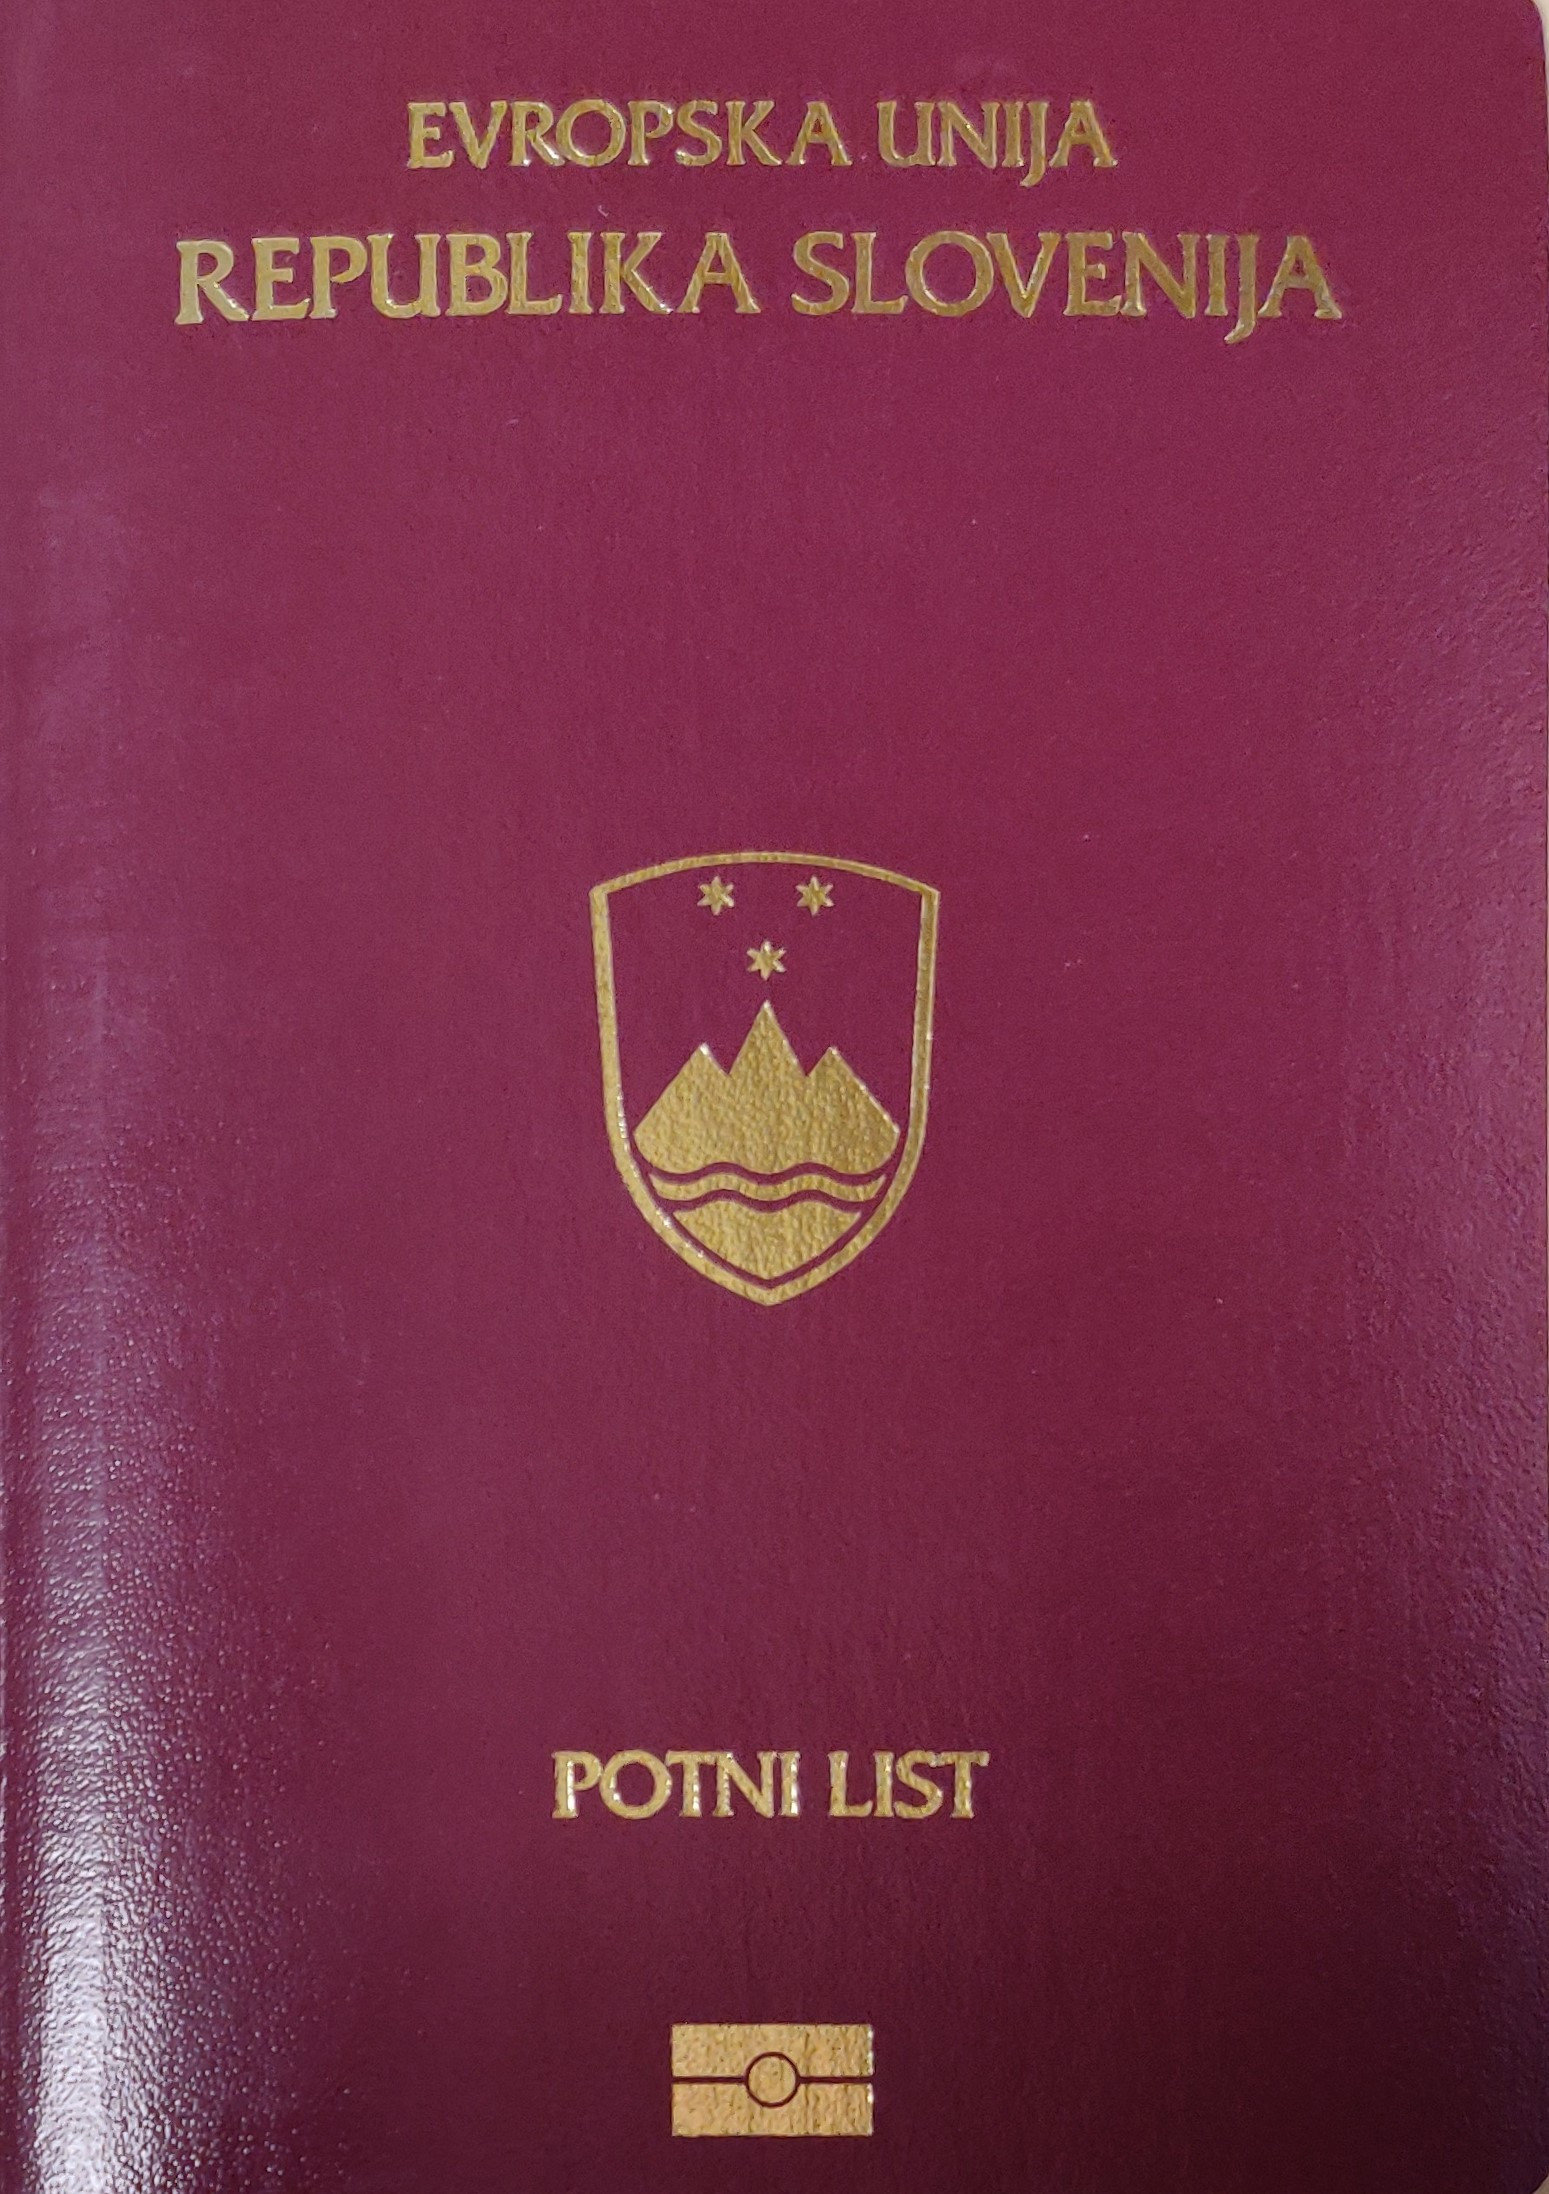 Guyana Legal forms Impressive Passports Of the European Union